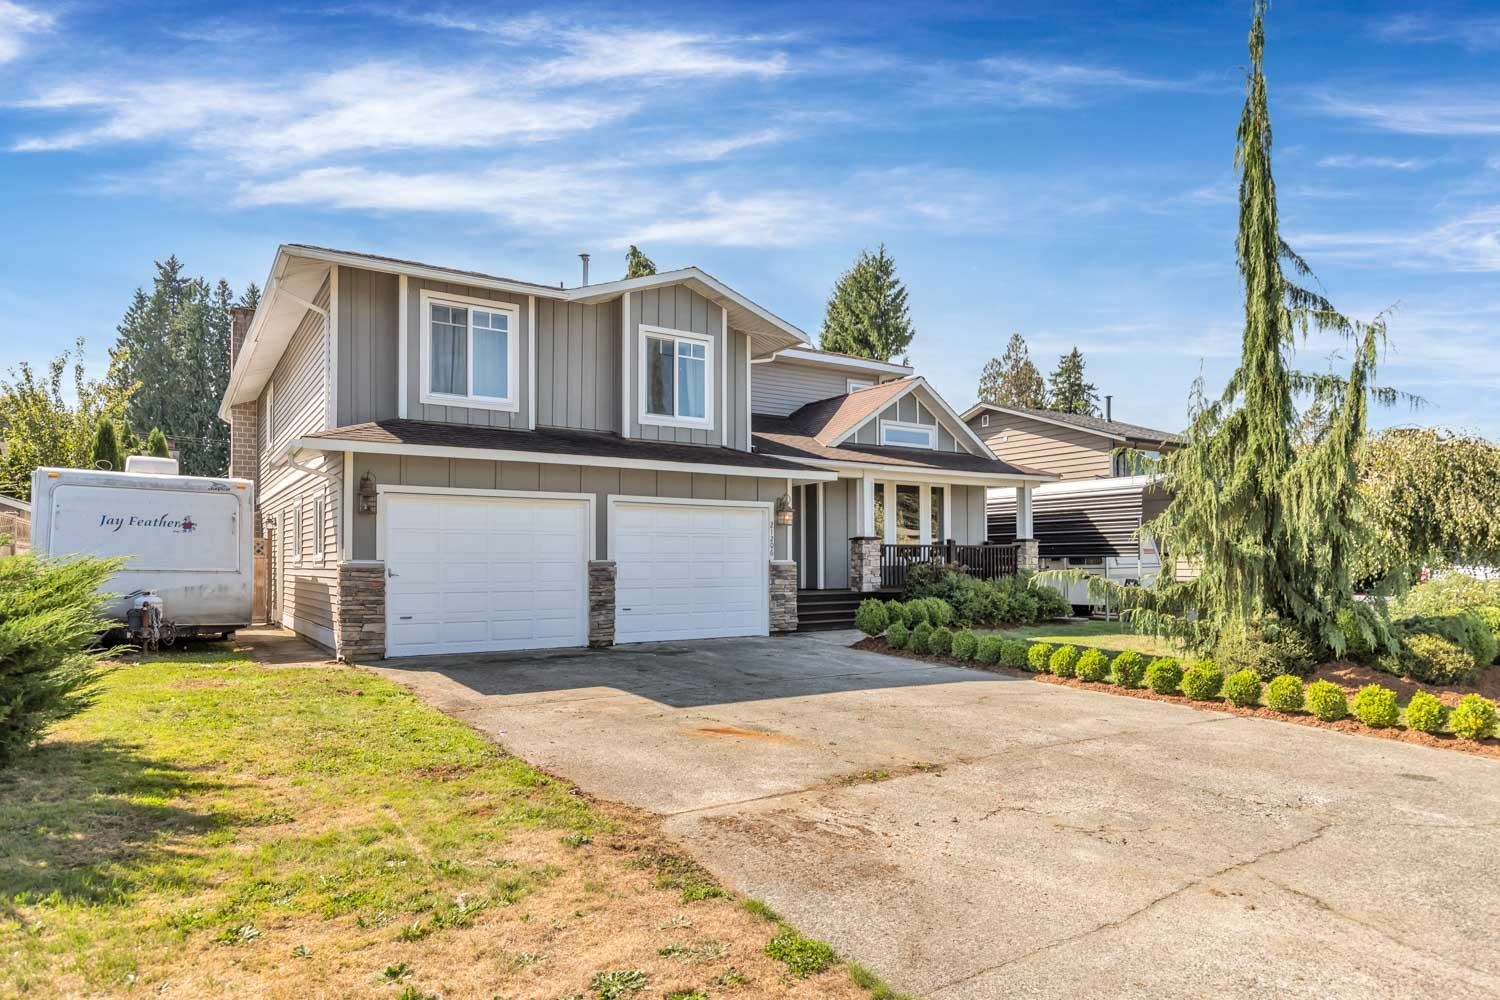 3,200sqft IN NORTH WEST MAPLE RIDGE!! This home had an extensive addition / renovation completed in 2013 w/ all the appropriate permits and engineered drawings. This home features 5 Bedrooms & 5 Bathrooms! Each bedroom HAS IT?S OWN ENSUITE! Features include an Updated Kitchen w/ Granite Counter Tops, Stainless-Steel Appliances including your Double Door Frigidaire Fridge! Other updates include: Modern Paint Scheme, Engineered Hardwood Flooring, Vinyl Siding, Central Vac., Composite Front Deck, New Hot Water Tank, Newer Windows, Newer Roof, extra Storage & a Flat Fully Fenced Private Backyard! All of this located in a quiet Cul-De-Sac just moments away from Volker Park, Laity View Elementary School, Chilcotin Park, West View High School, Abernethy Connector & Transit & much more!!